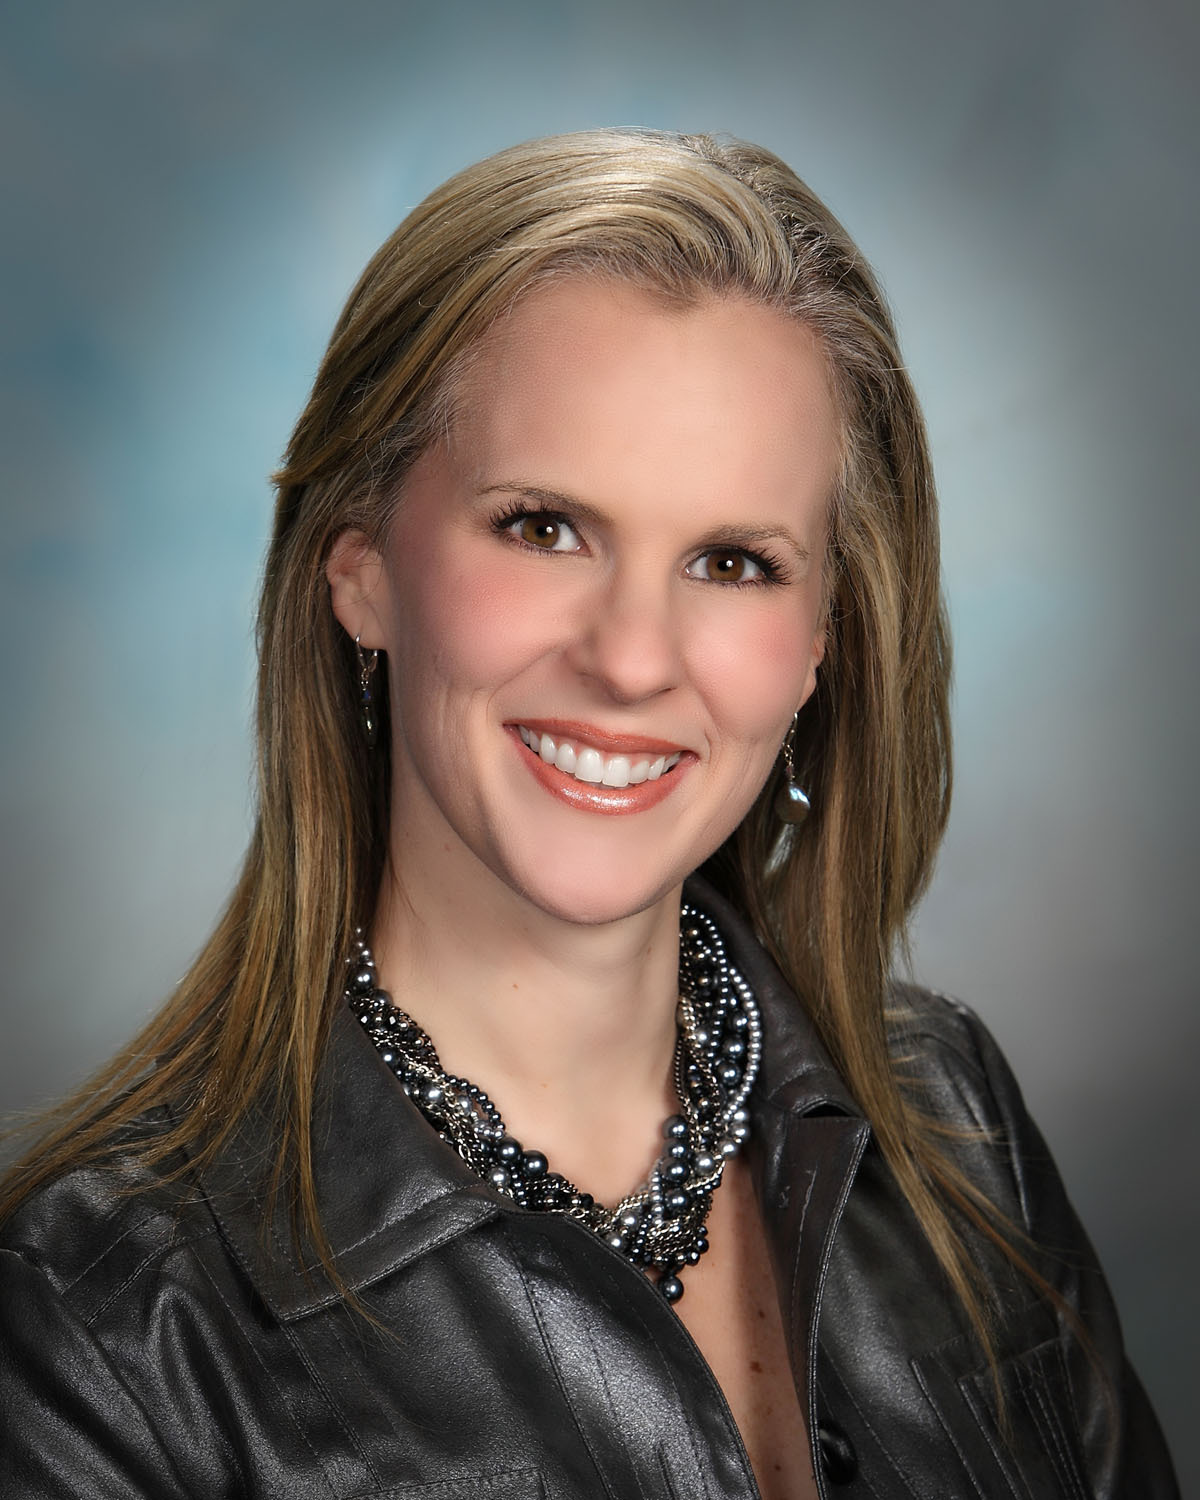 As Vice President of Recognition and Events, Laura Beitler now leads the team responsible for developing and implementing Mary Kay's independent sales force recognition programs and special events in the U.S. (Photo: Business Wire)